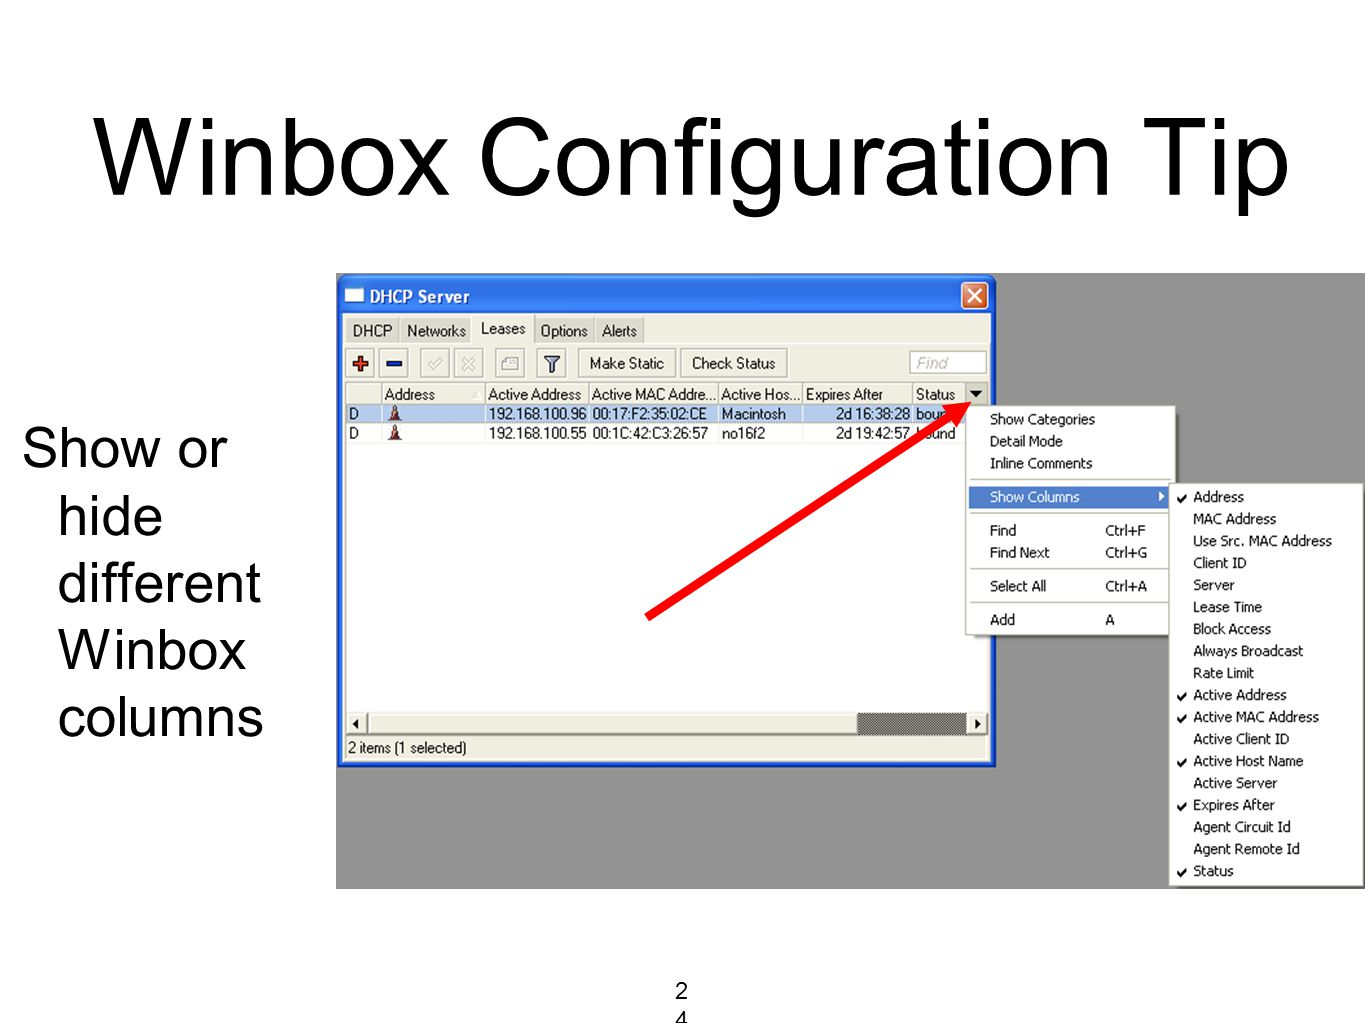 Winbox Configuration Tip Show or hide different Winbox columns 243243243